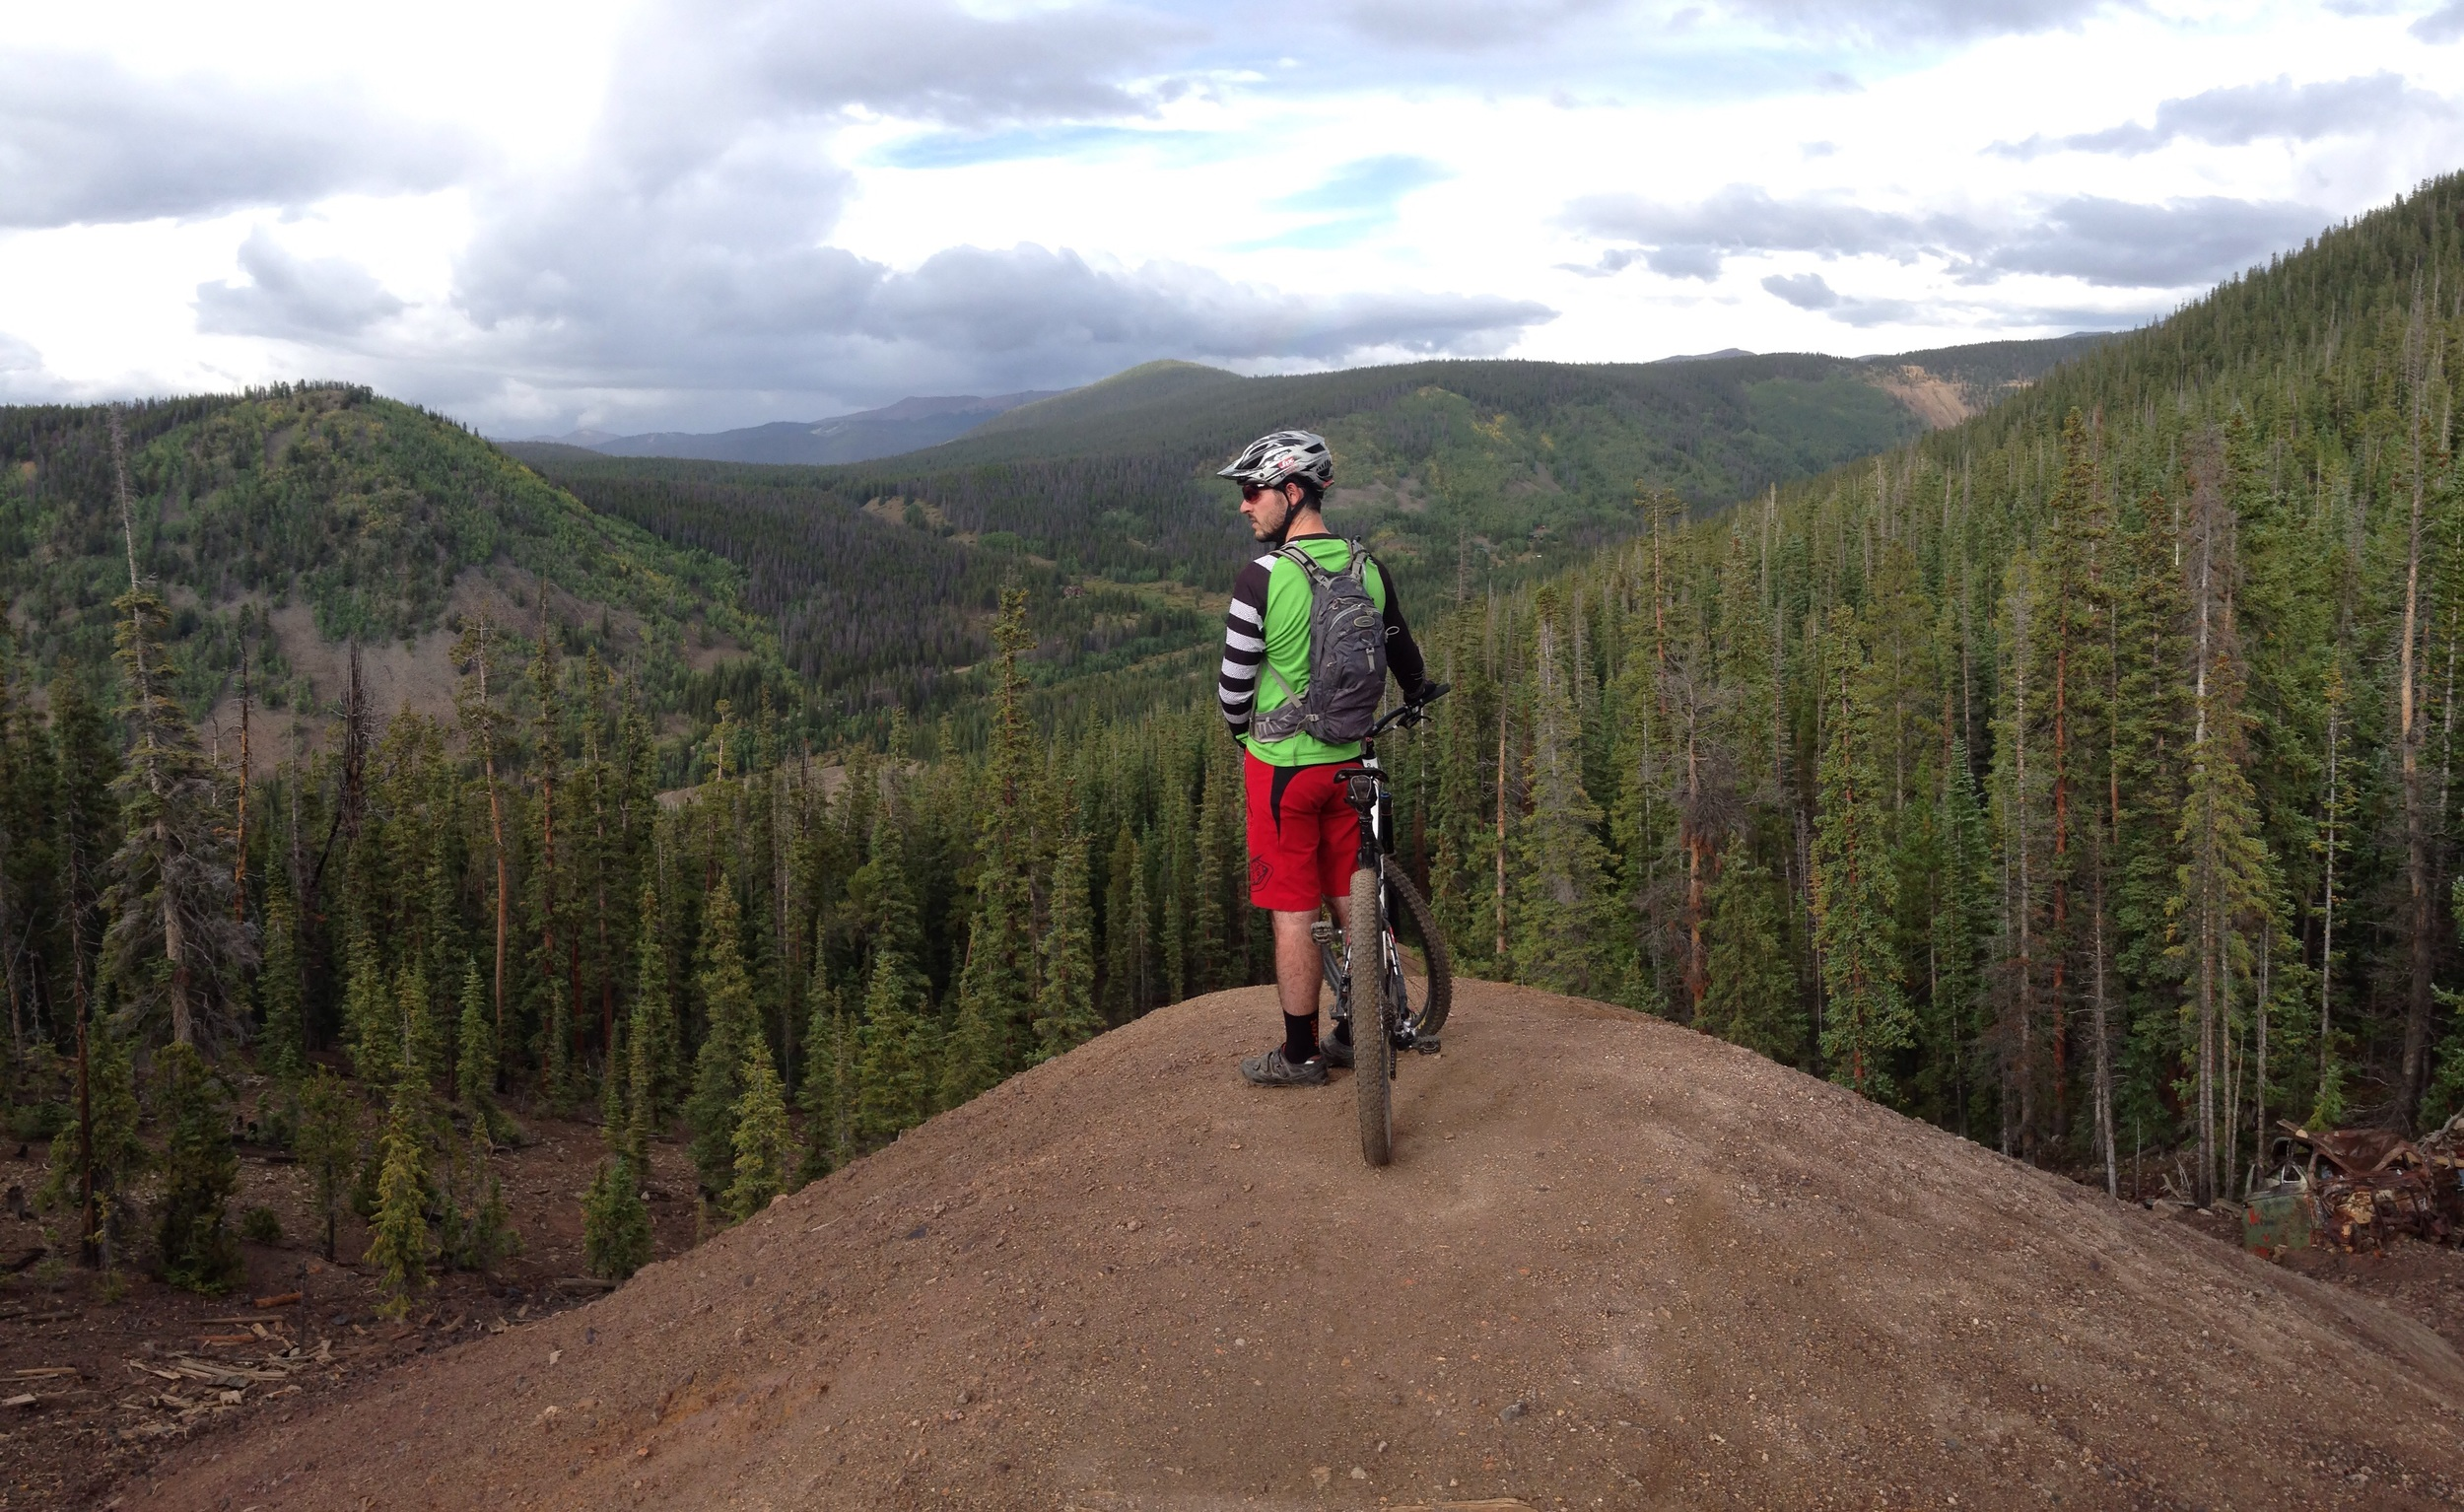 """Rode some singletrack around Breckenridge with a friend. I believe his words were, """"just follow my line"""". Needless to say, I almost did but ended up just peered over the edge... this time."""